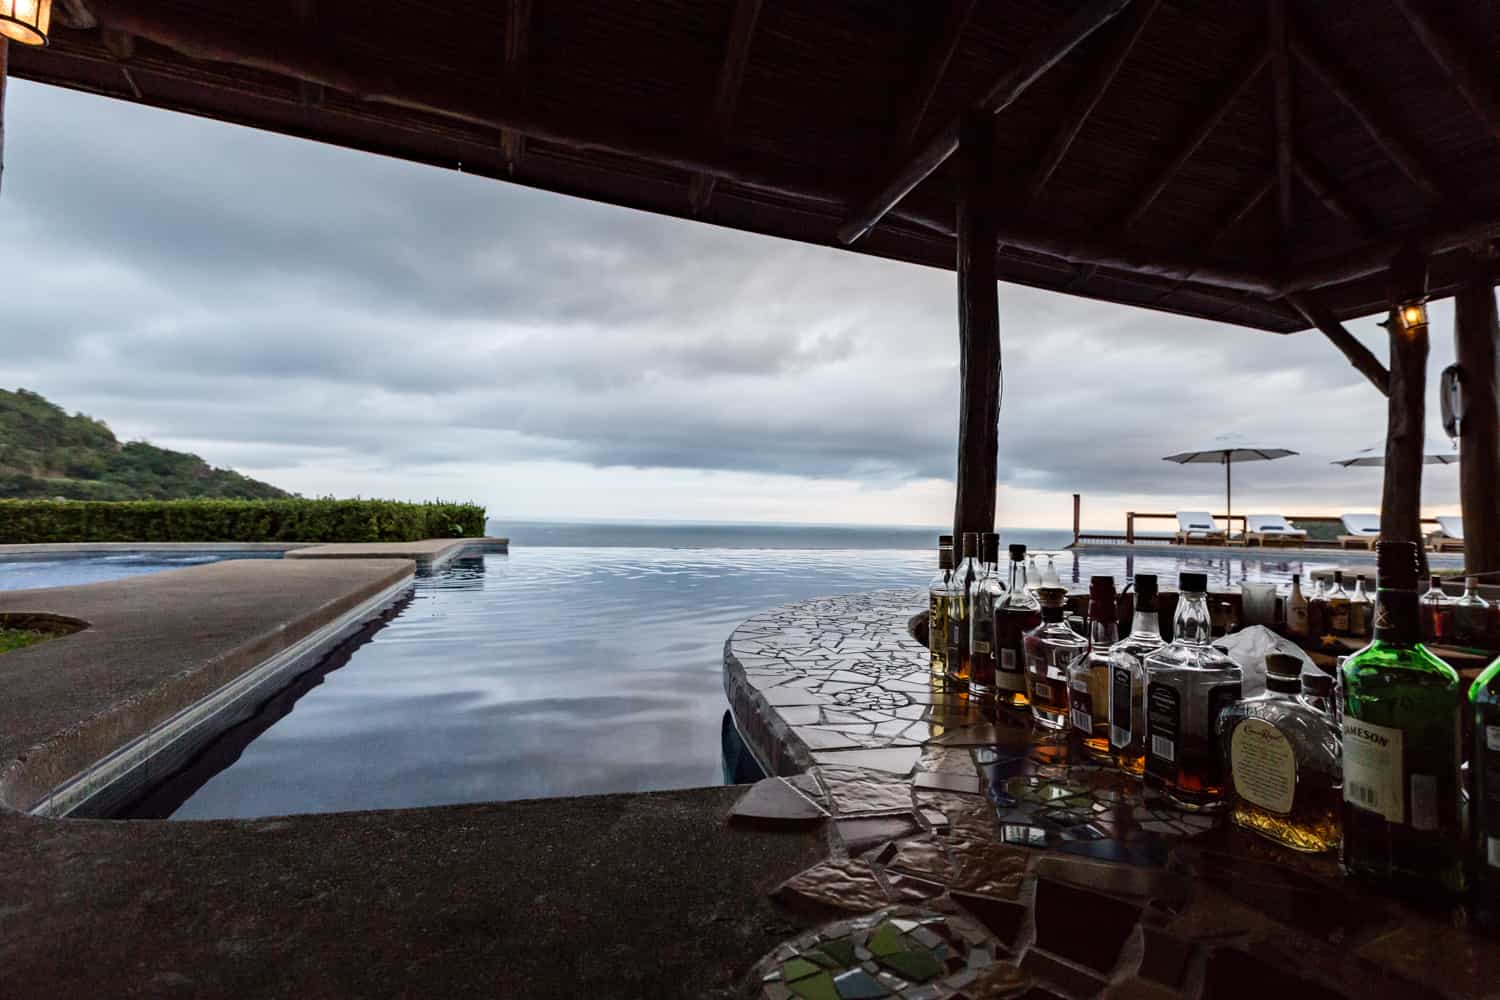 Hotel Punta Islita's terrace with infinity pool and submerged bar is great place for wedding party.